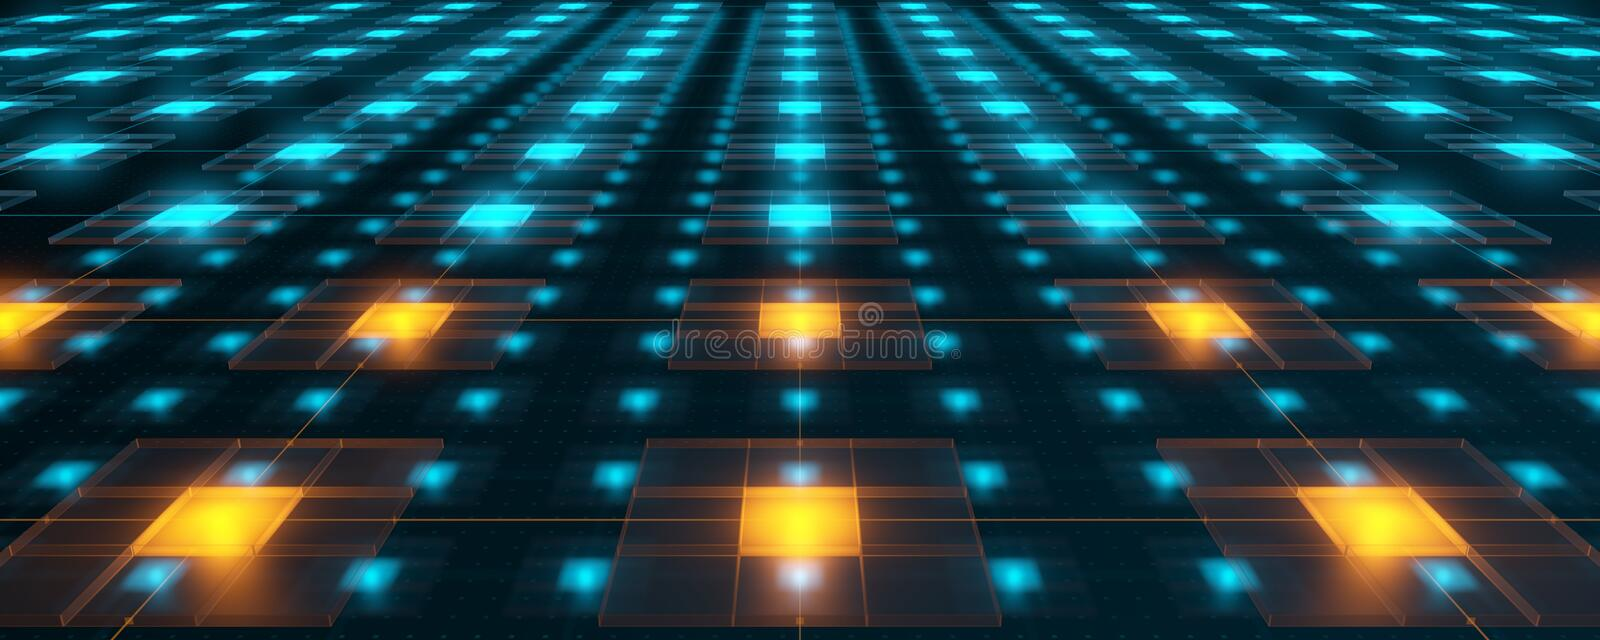 Hitech networks. With overheat cores stock images